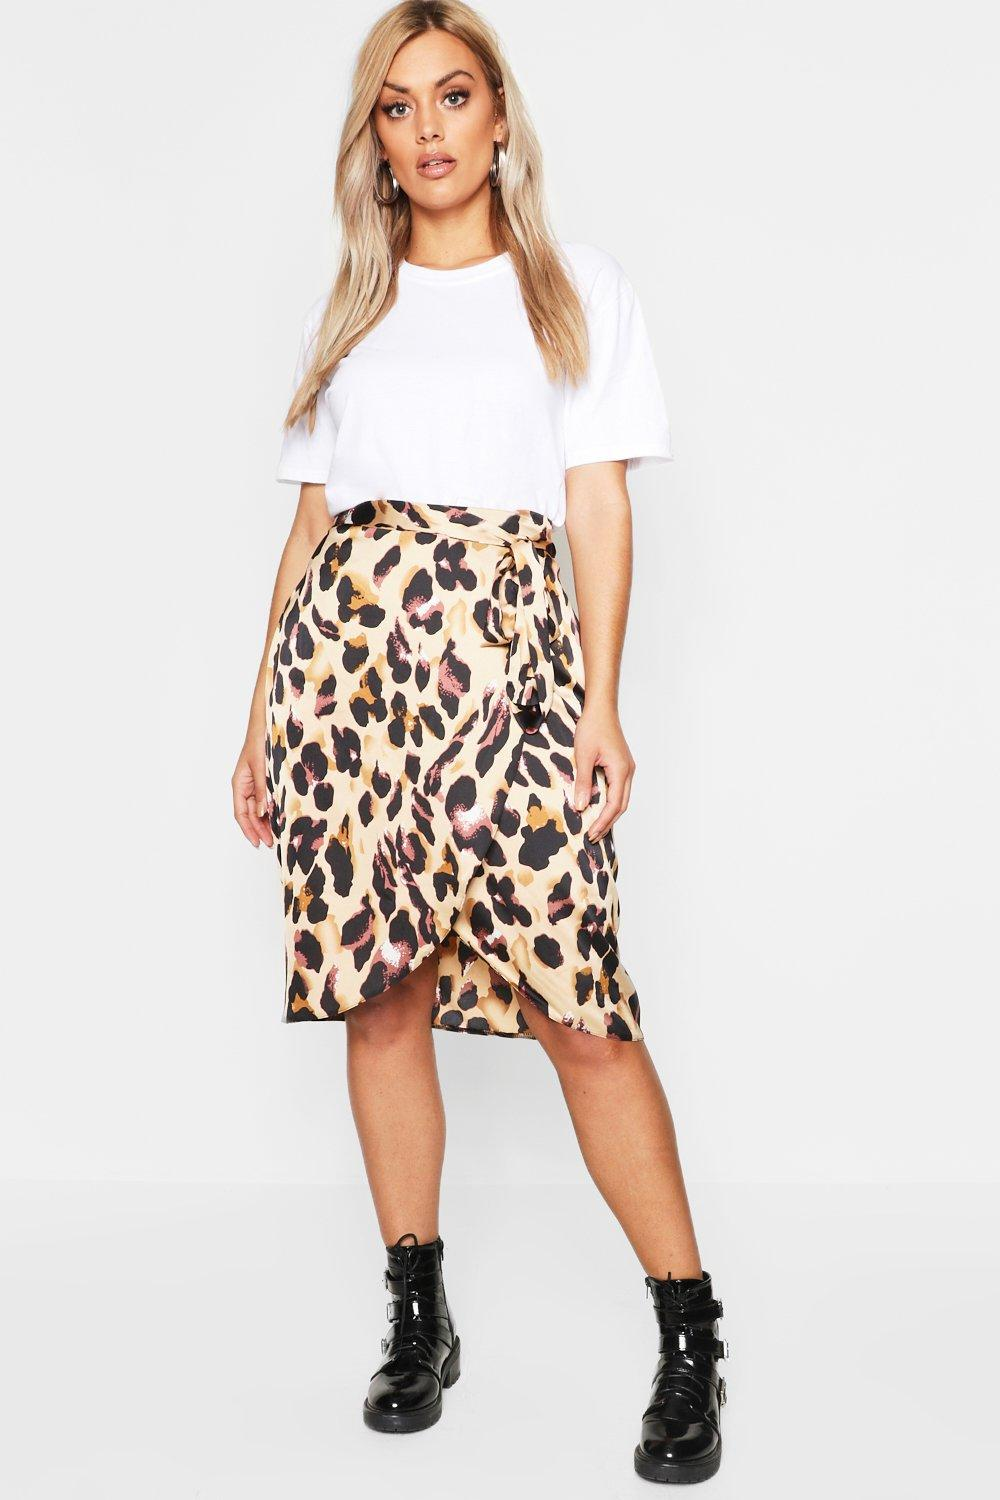 boohoo Womens Plus Leopard Satin Ruffle Wrap Skirt - Brown - 18, Brown